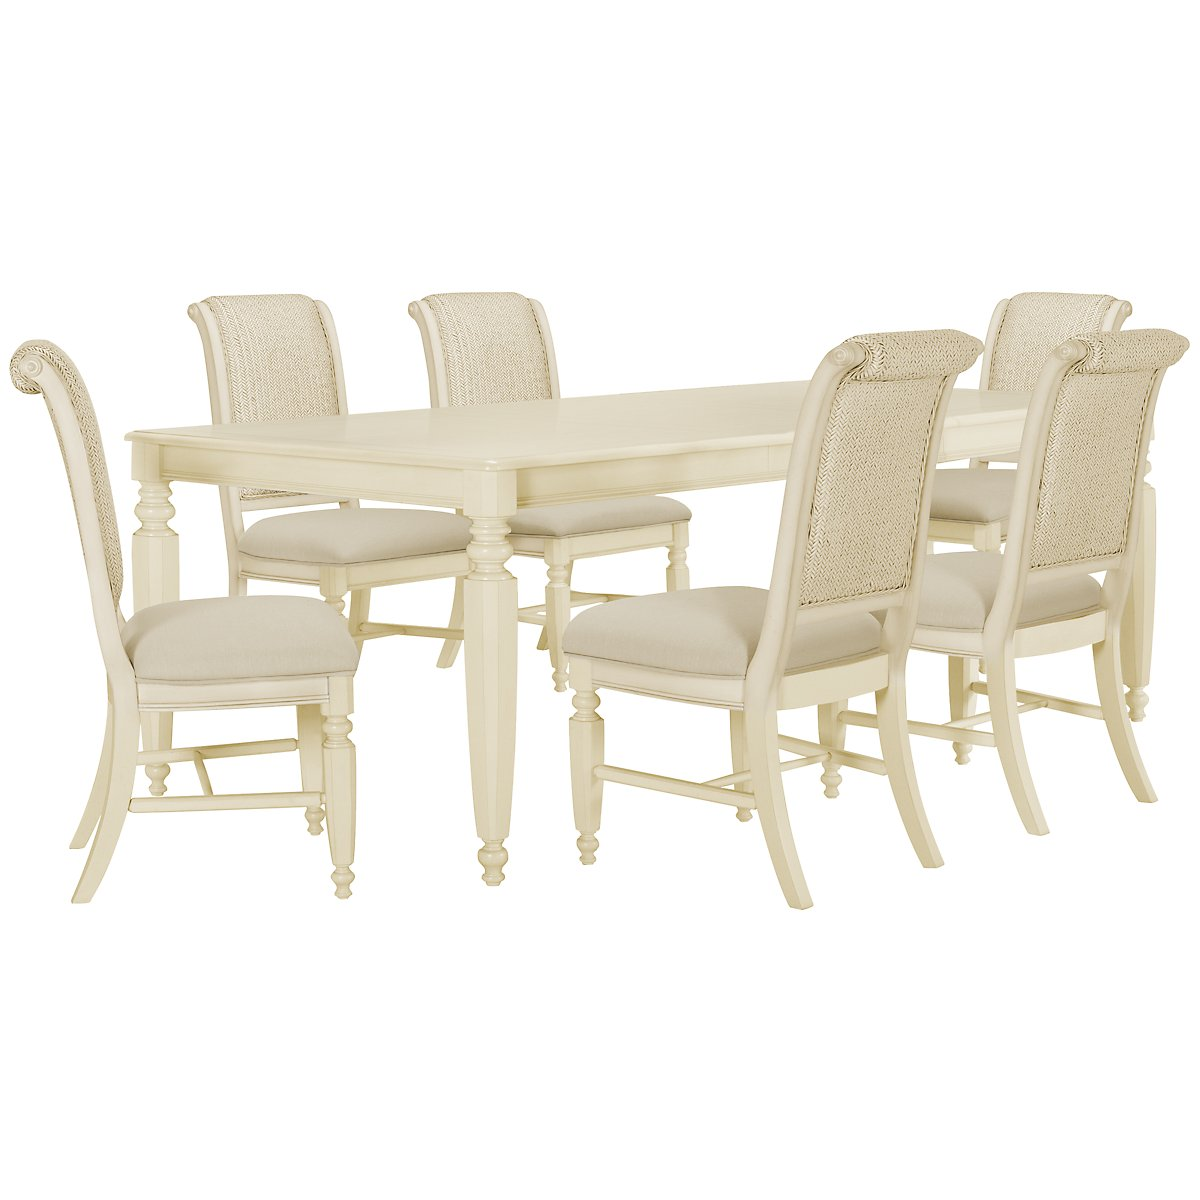 Claire White Rectangular Table & 4 Woven Chairs